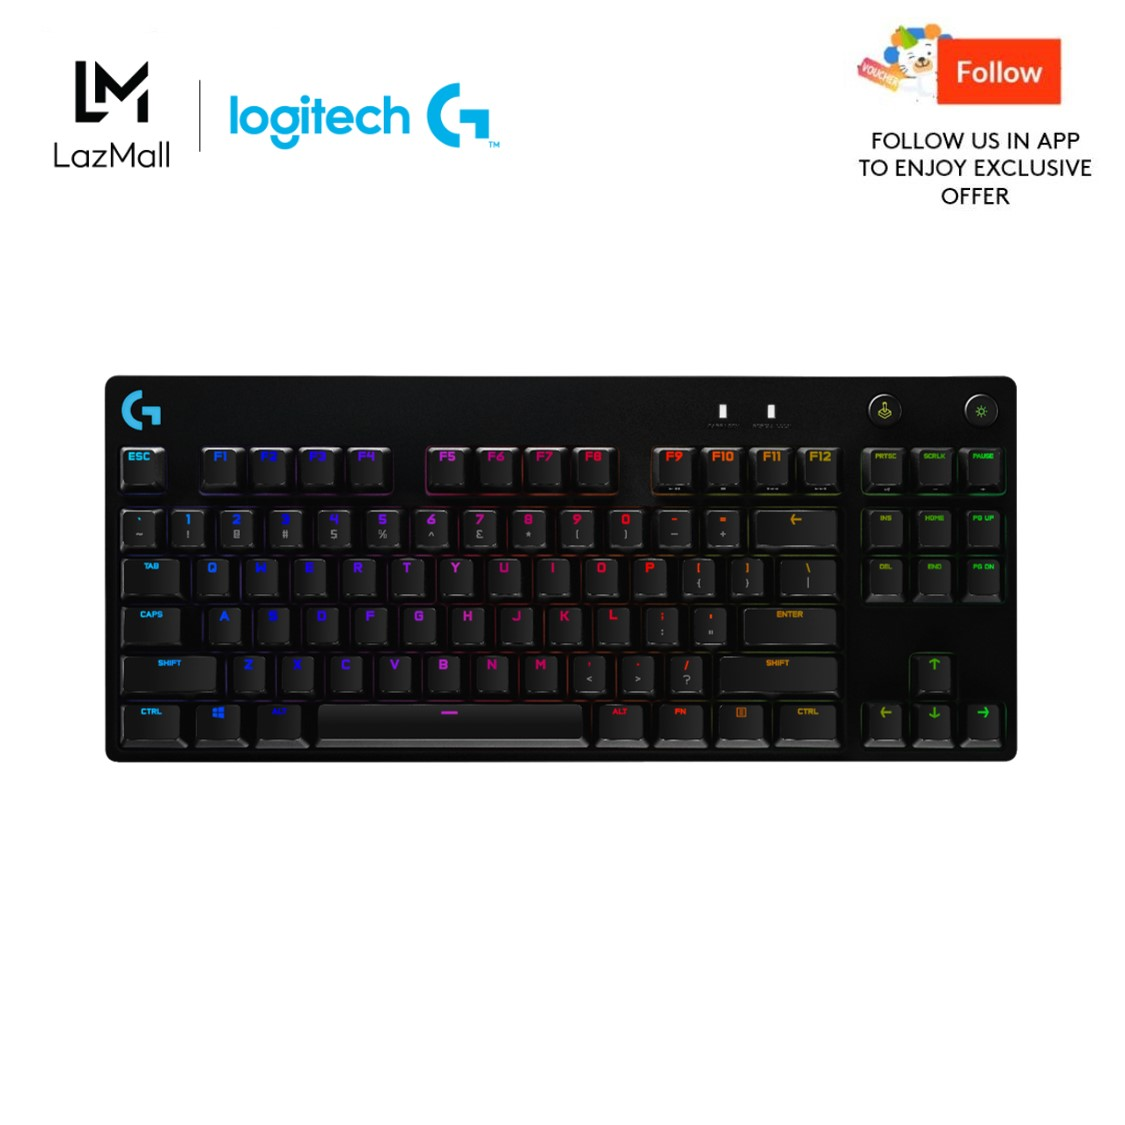 Logitech G Pro X Mechanical RGB Gaming Keyboard with Swappable Switches (Comes with GX Blue Clicky Switches)